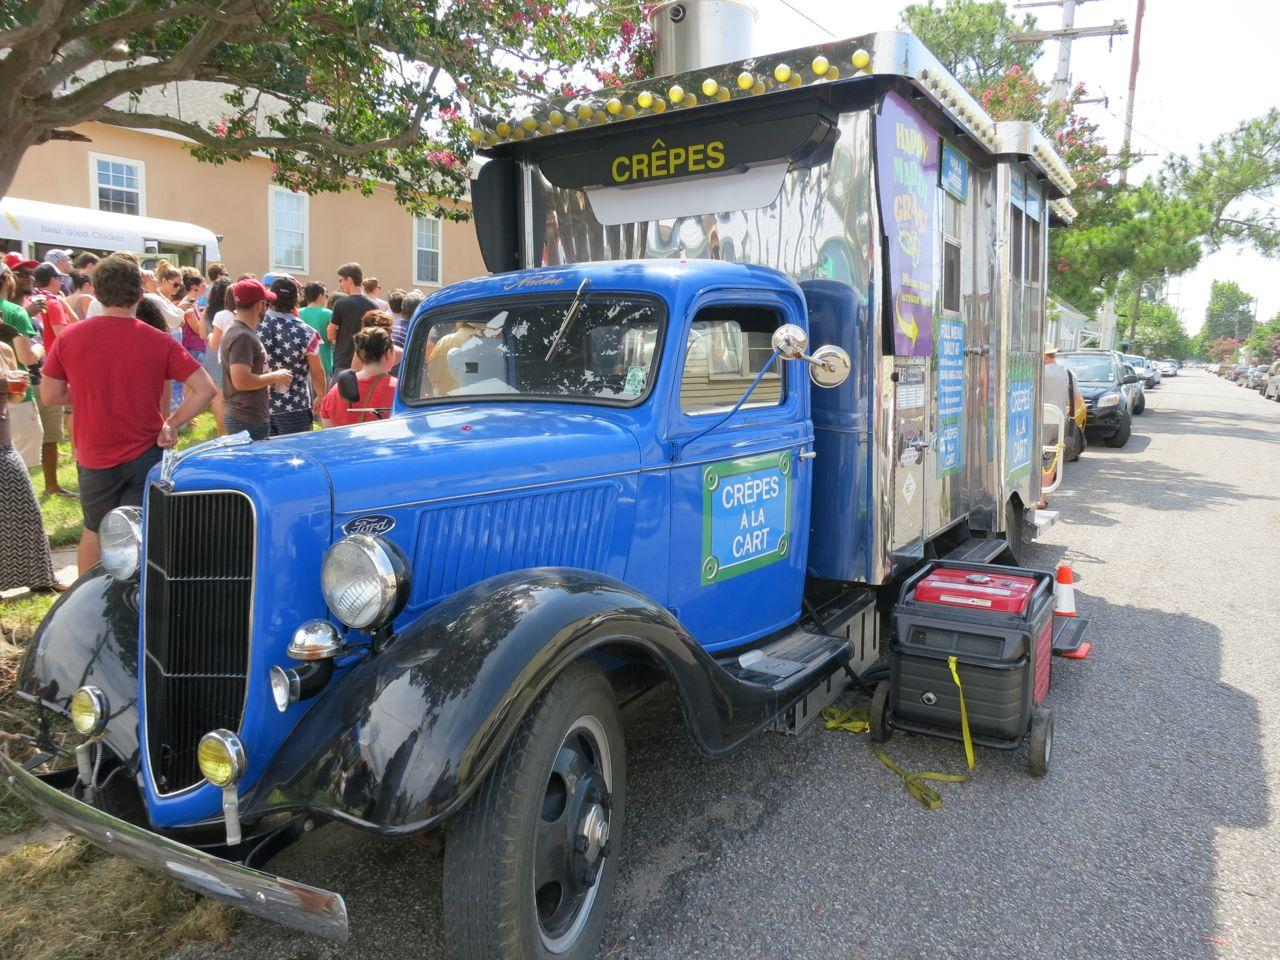 The Crepes A La Cart Food Truck Is Among Vendors Taking Part In New St Claude Park